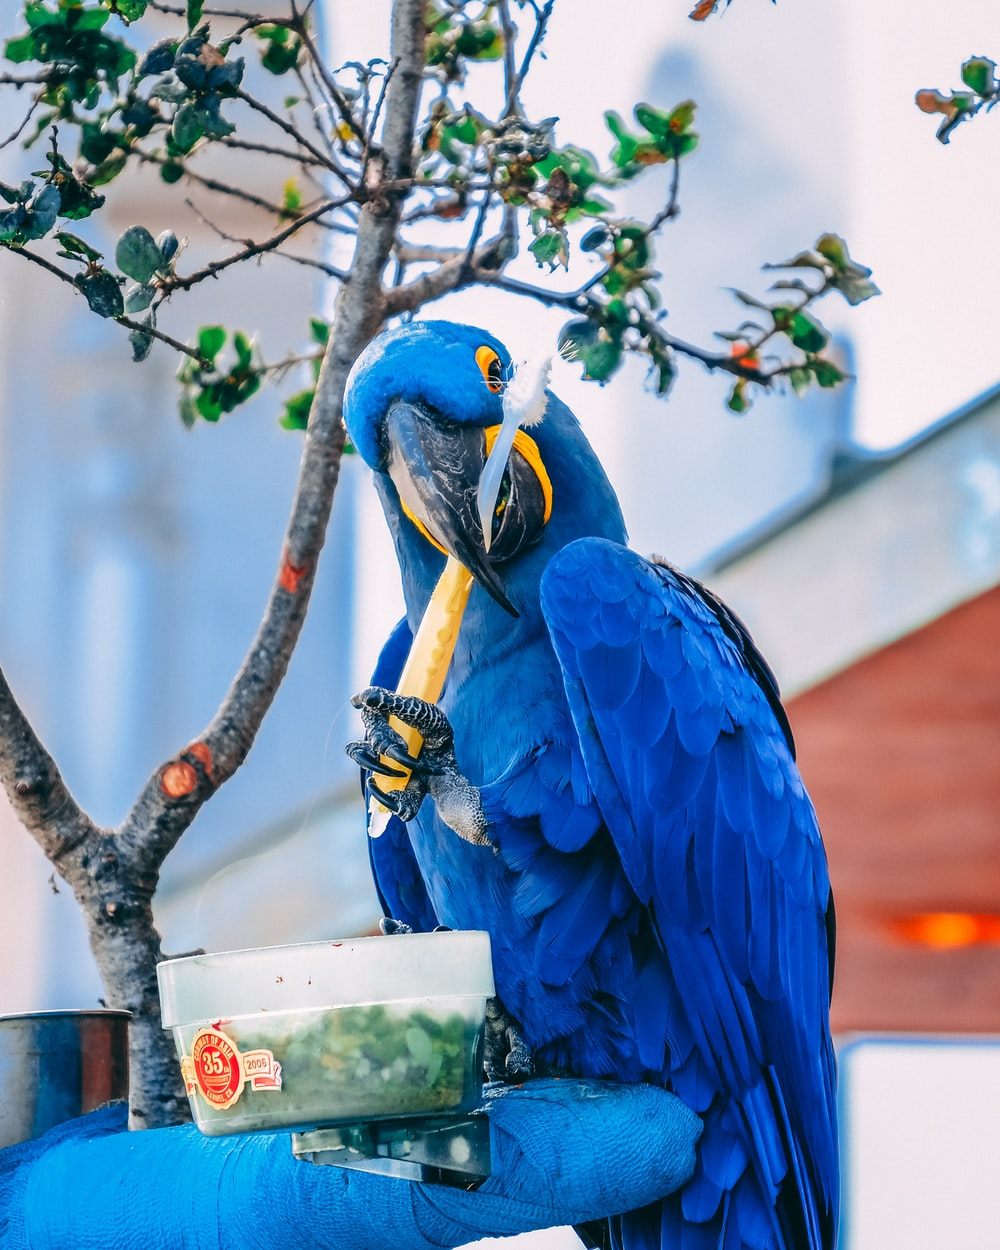 blue macaw holding toothbrush during daytime